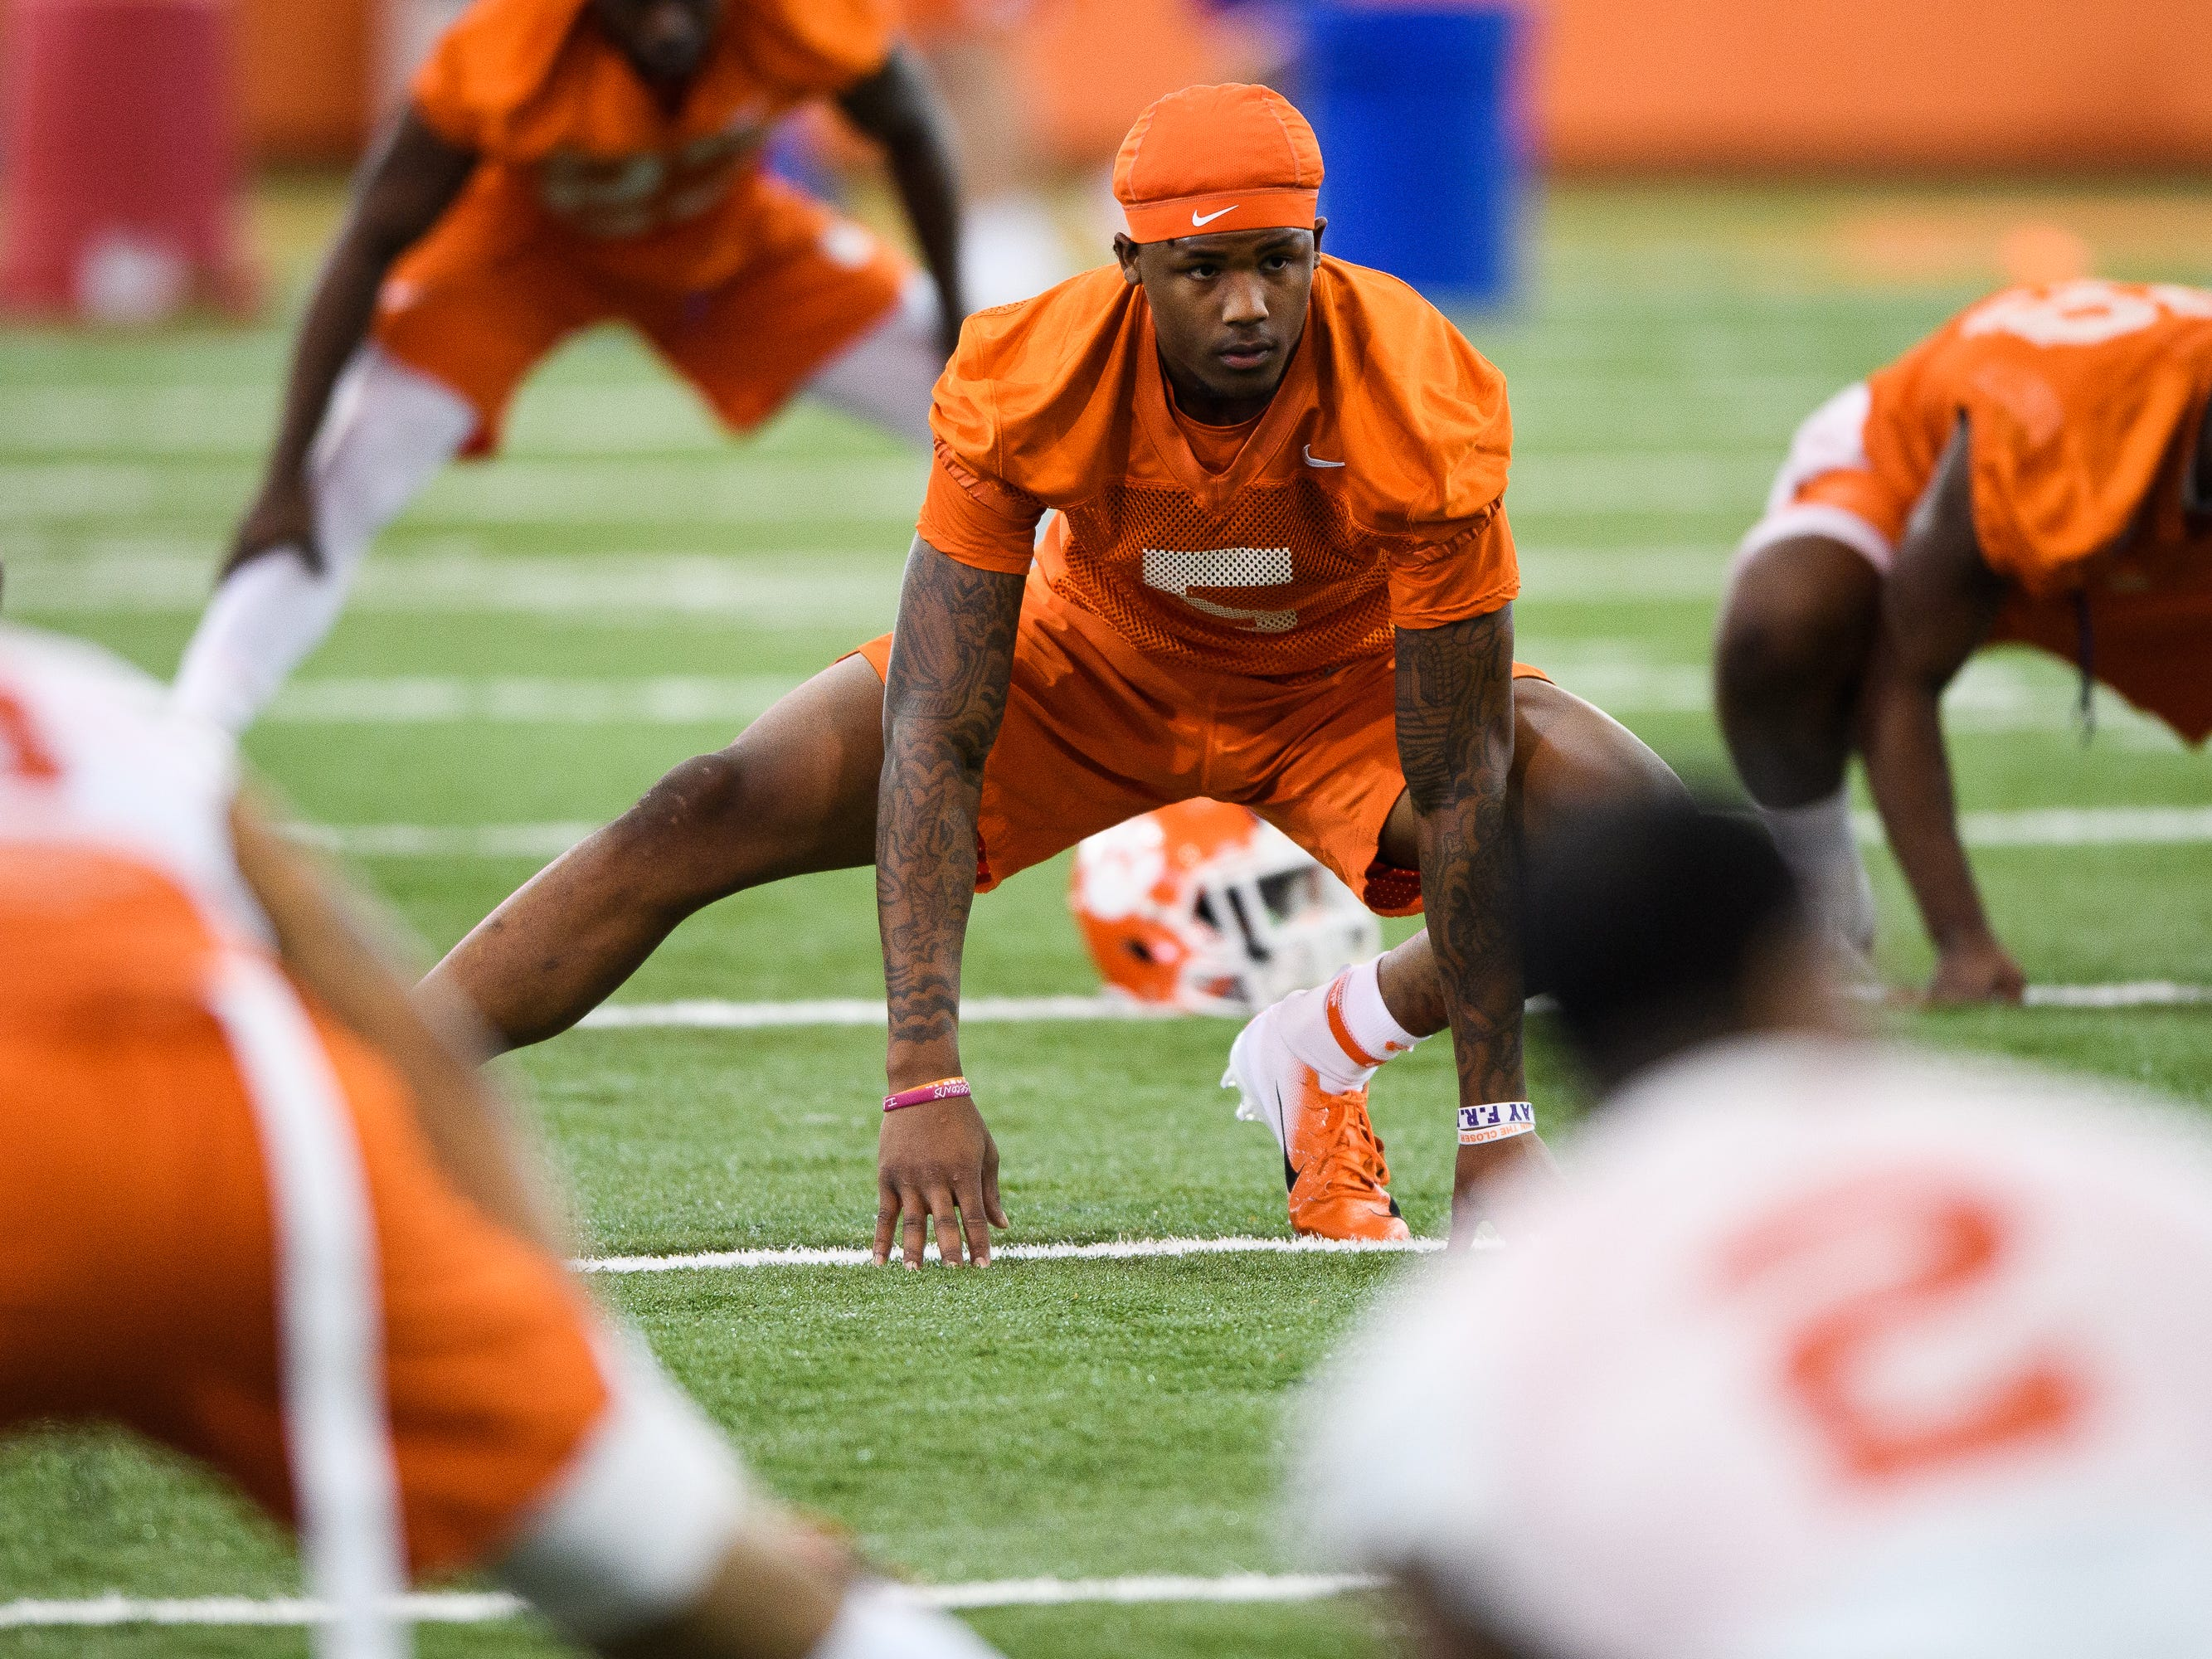 Clemson linebacker Shaq Smith (5) stretches during practice at the Allen Reeves Football Complex on Wednesday, Feb. 27, 2019.